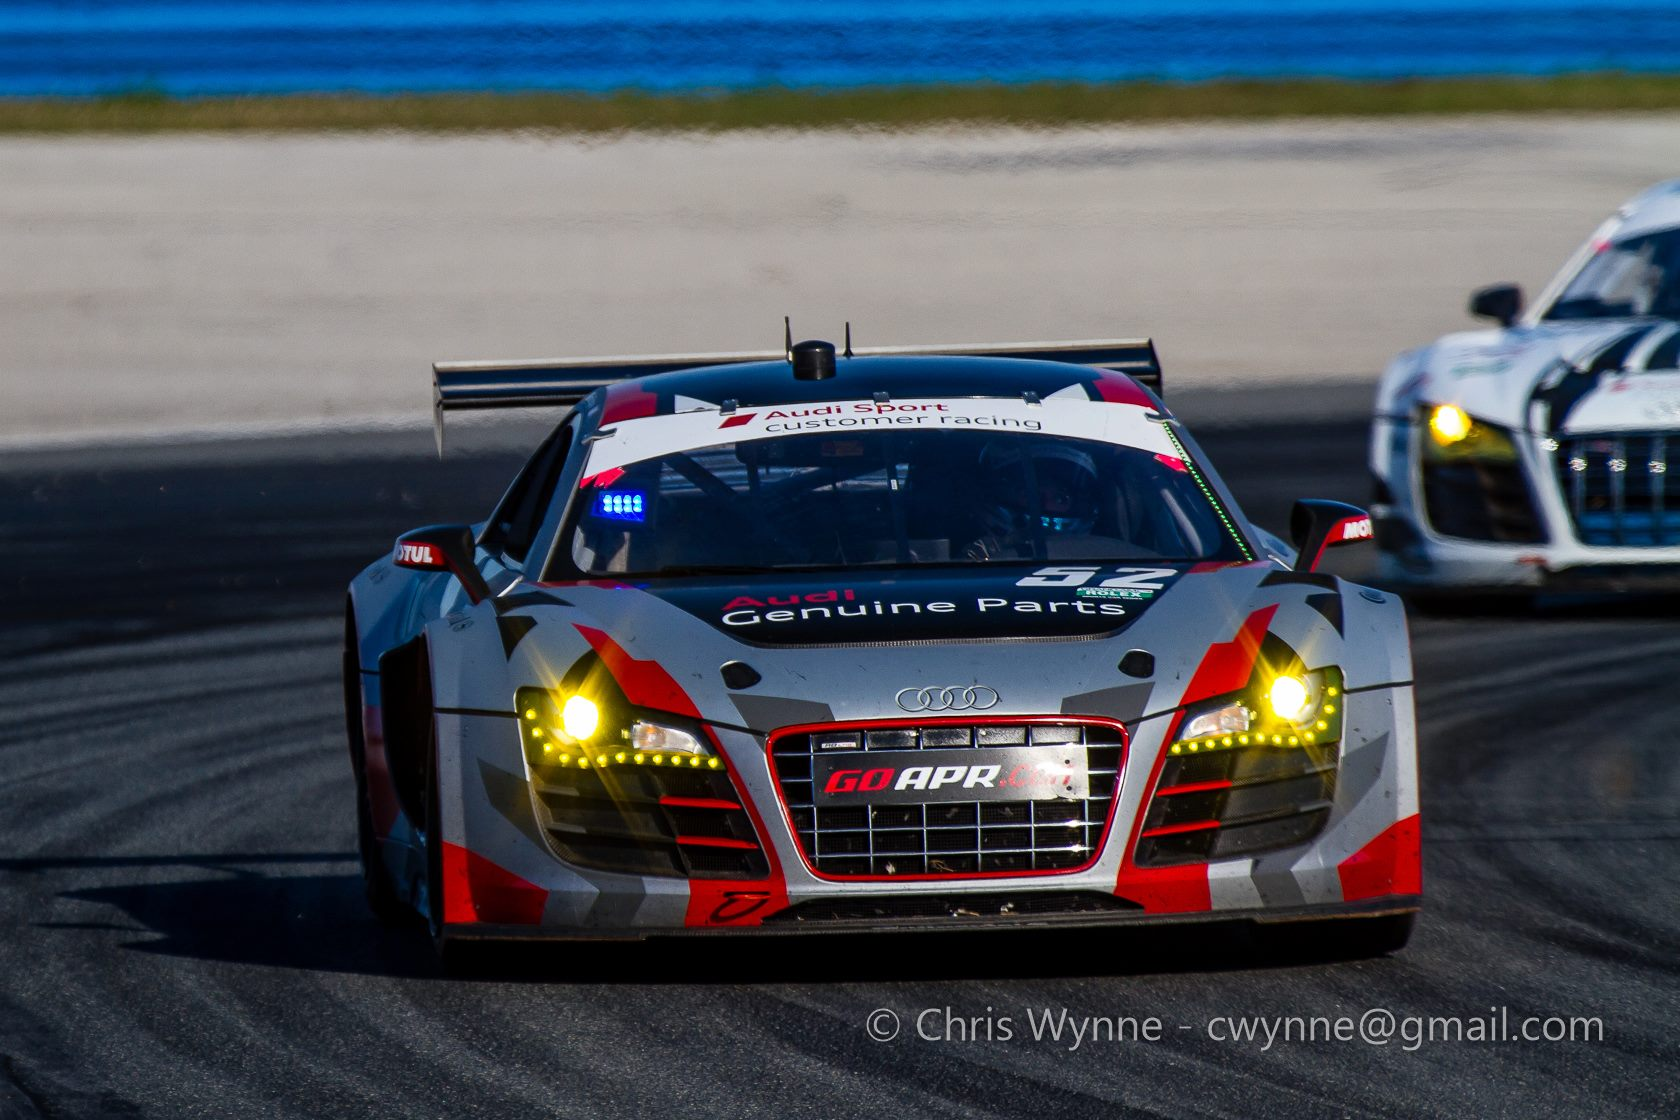 Audi Pictures from the Rolex 24 Hours at Daytona in 2013